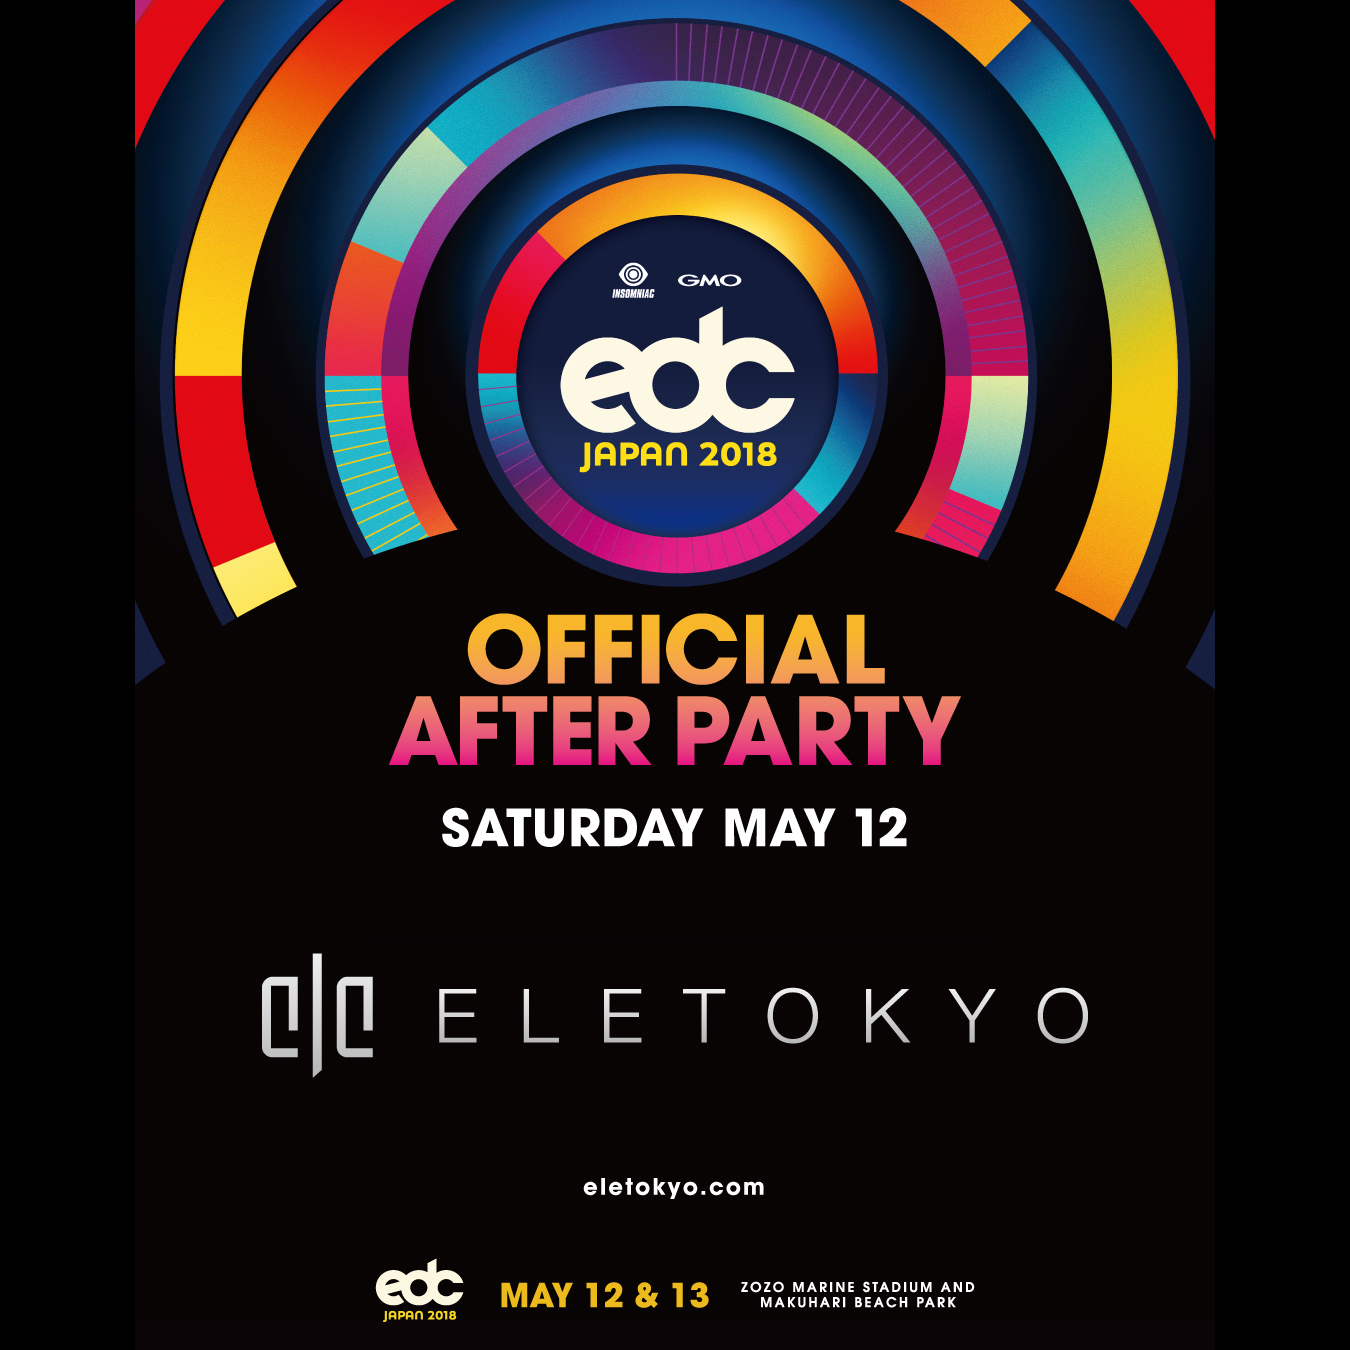 EDC JAPAN OFFICIAL AFTER PARTY